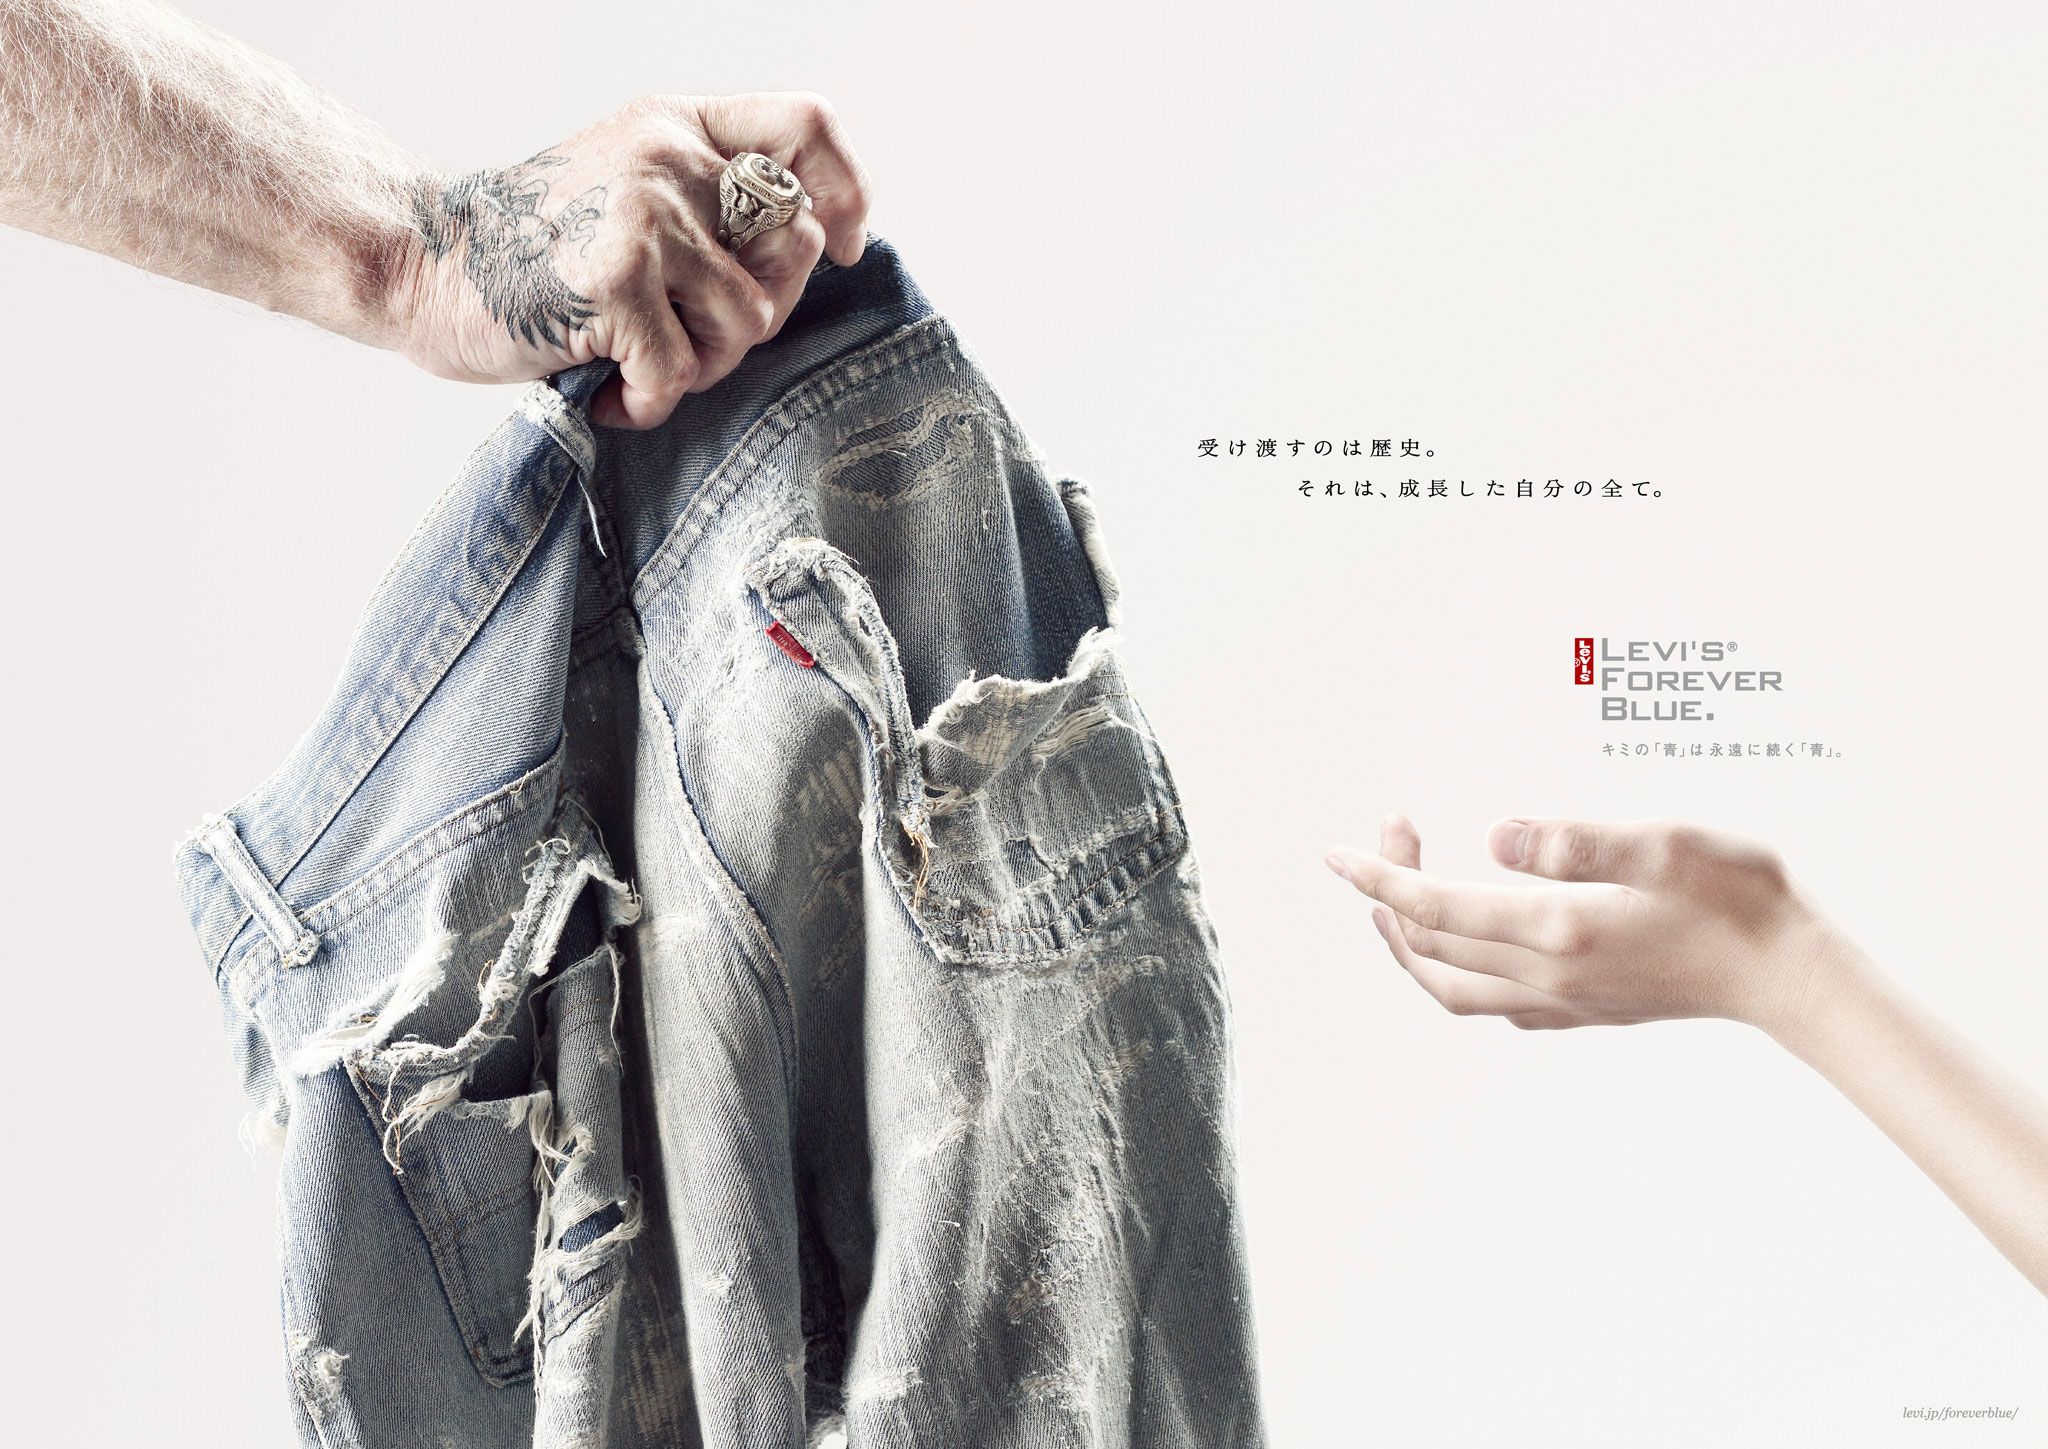 levi strauss co global sourcing recommendation Levi strauss & co seeks to conduct its business in a responsible manner  our  global sourcing & operating guidelines help us to select business partners who   in response to a recommendation made during a terms of engagement.